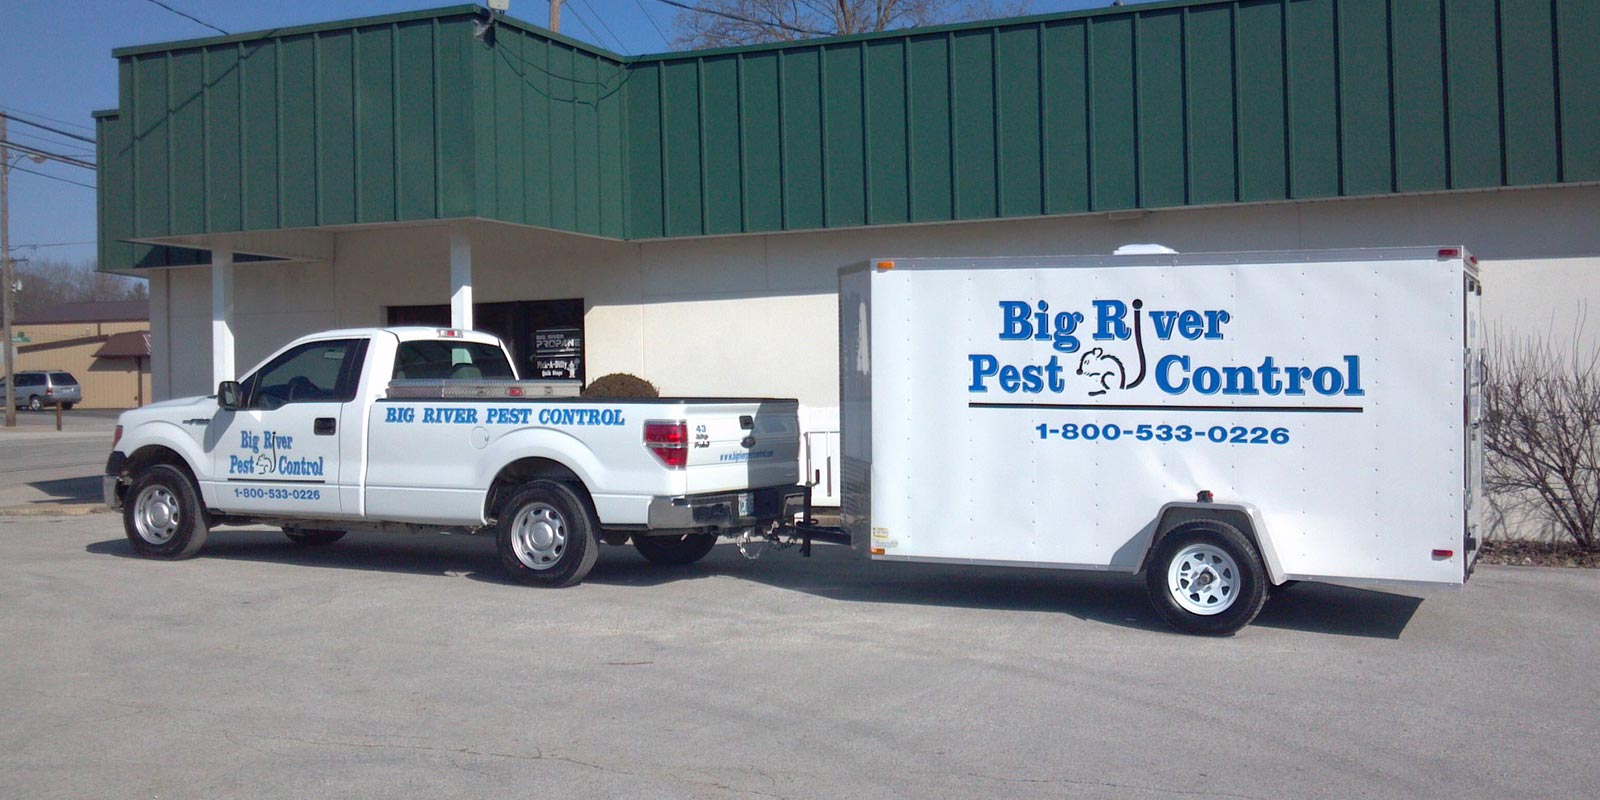 About Big River Pest Control